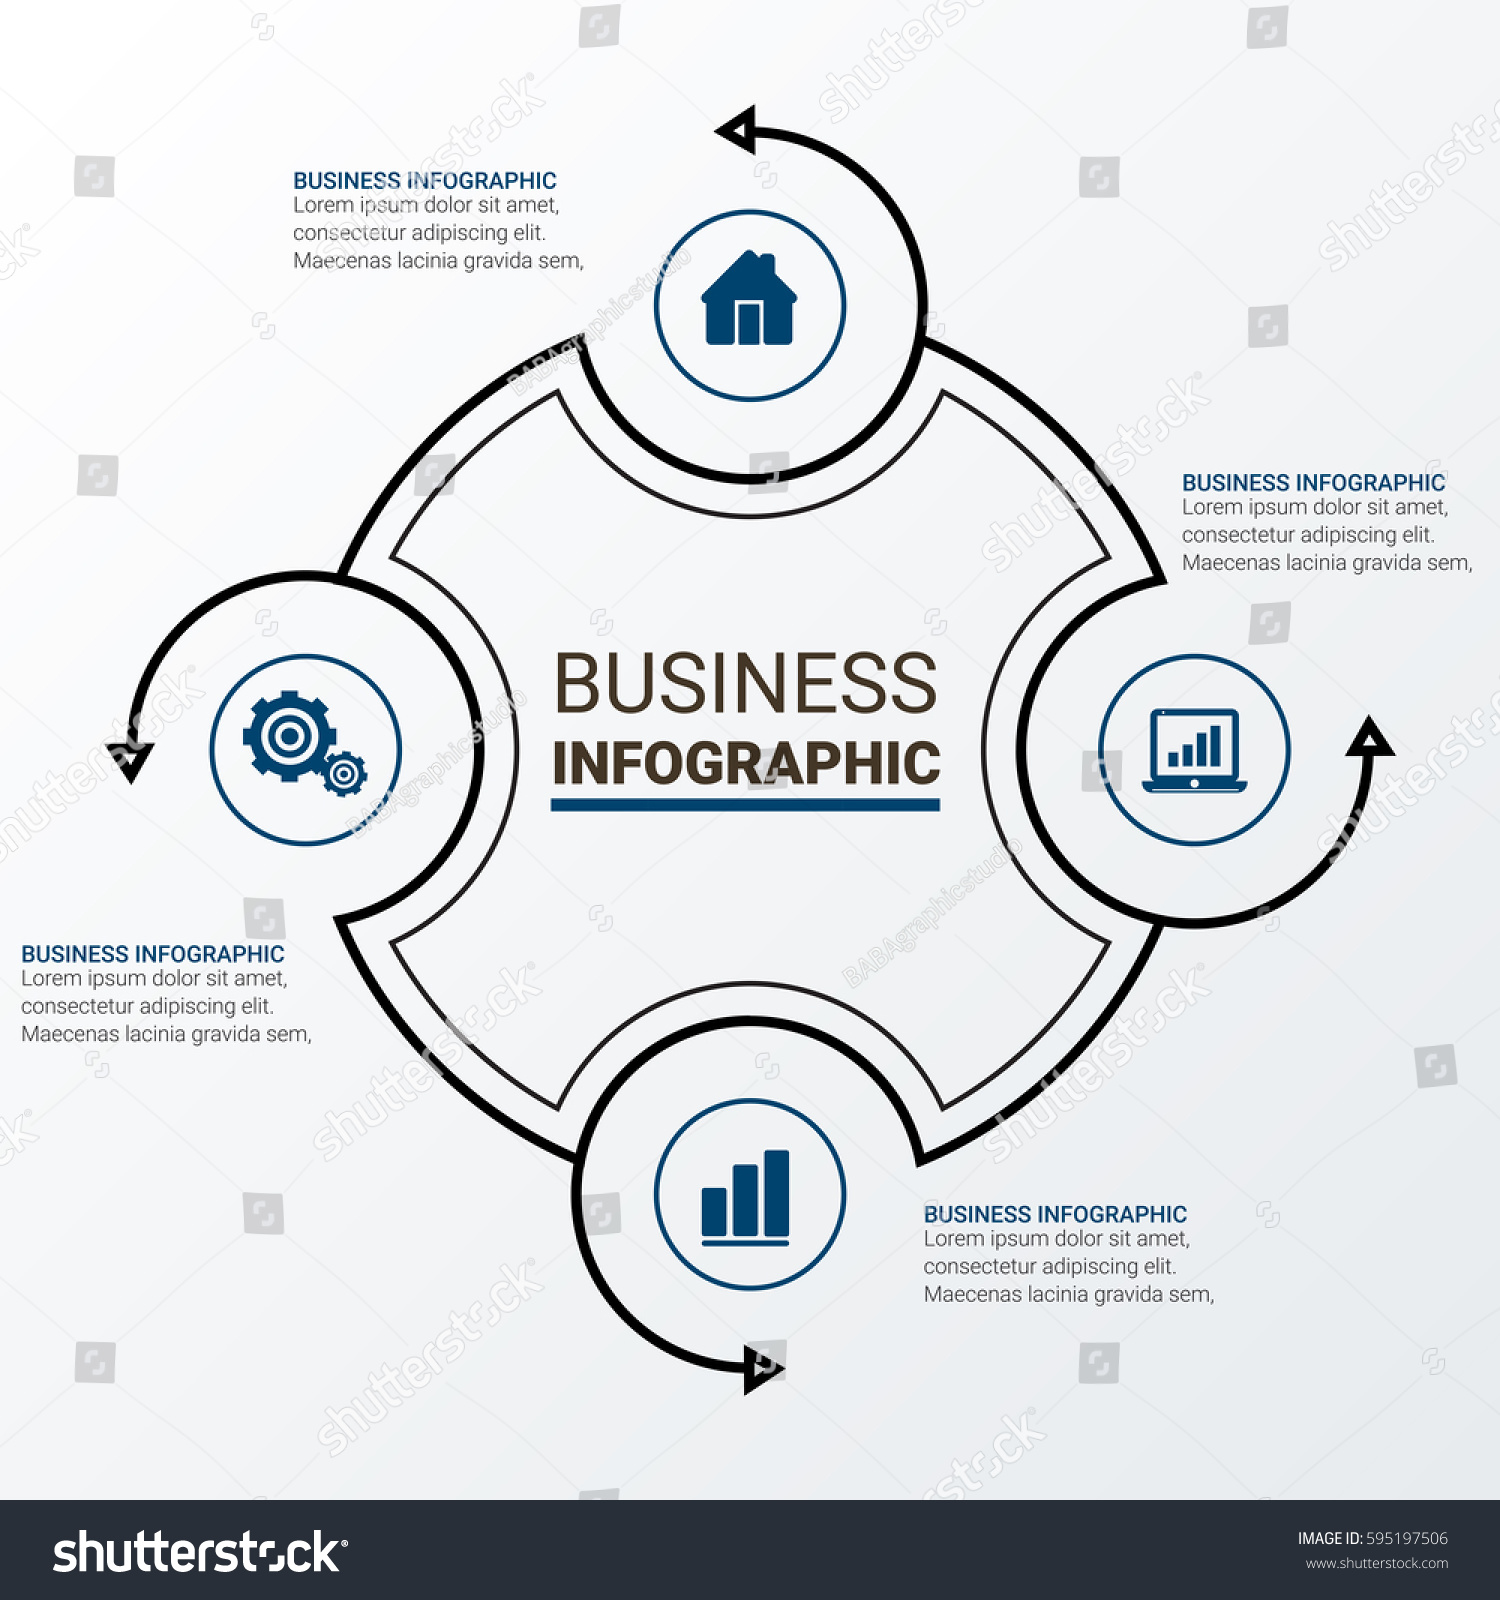 Modern Infographic Charts Vector Elements Stock Vector ...